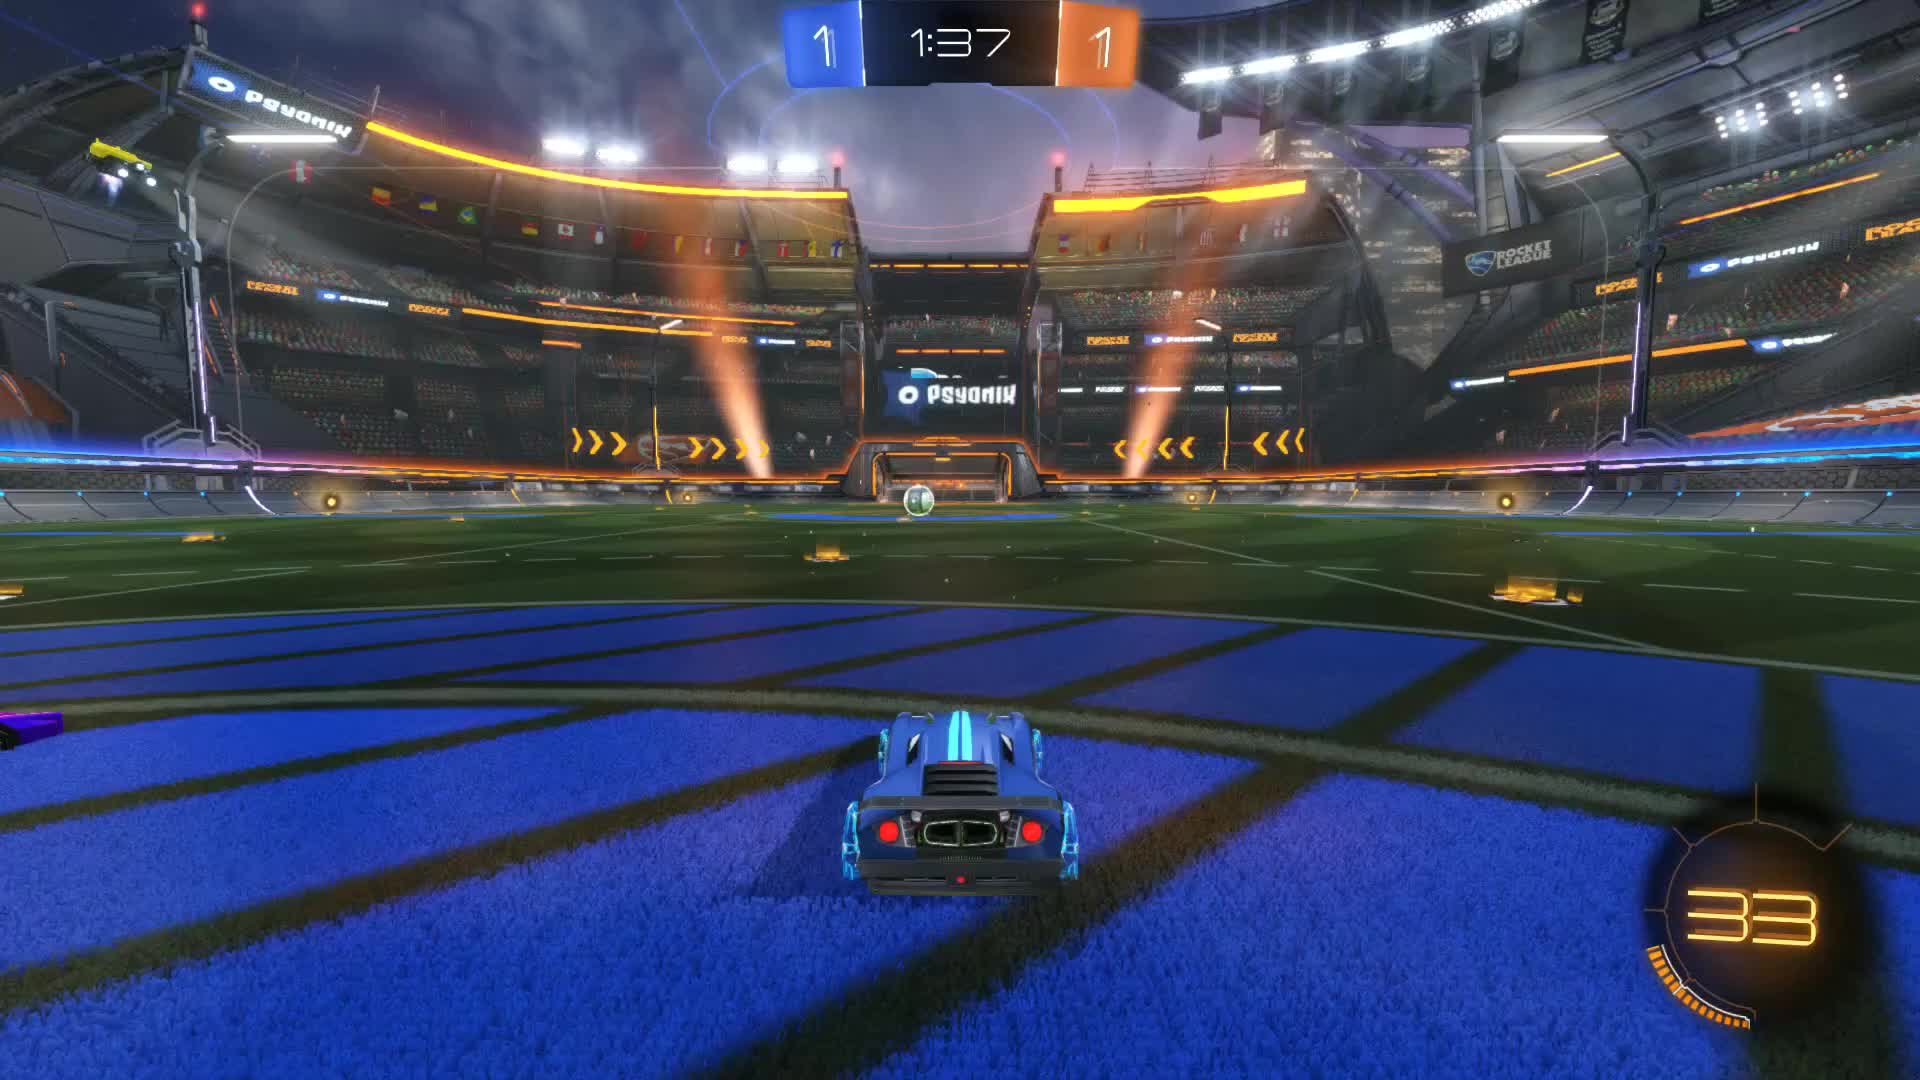 Gif Your Game, GifYourGame, Goal, Holy, Rocket League, RocketLeague, Goal 3: Holy GIFs